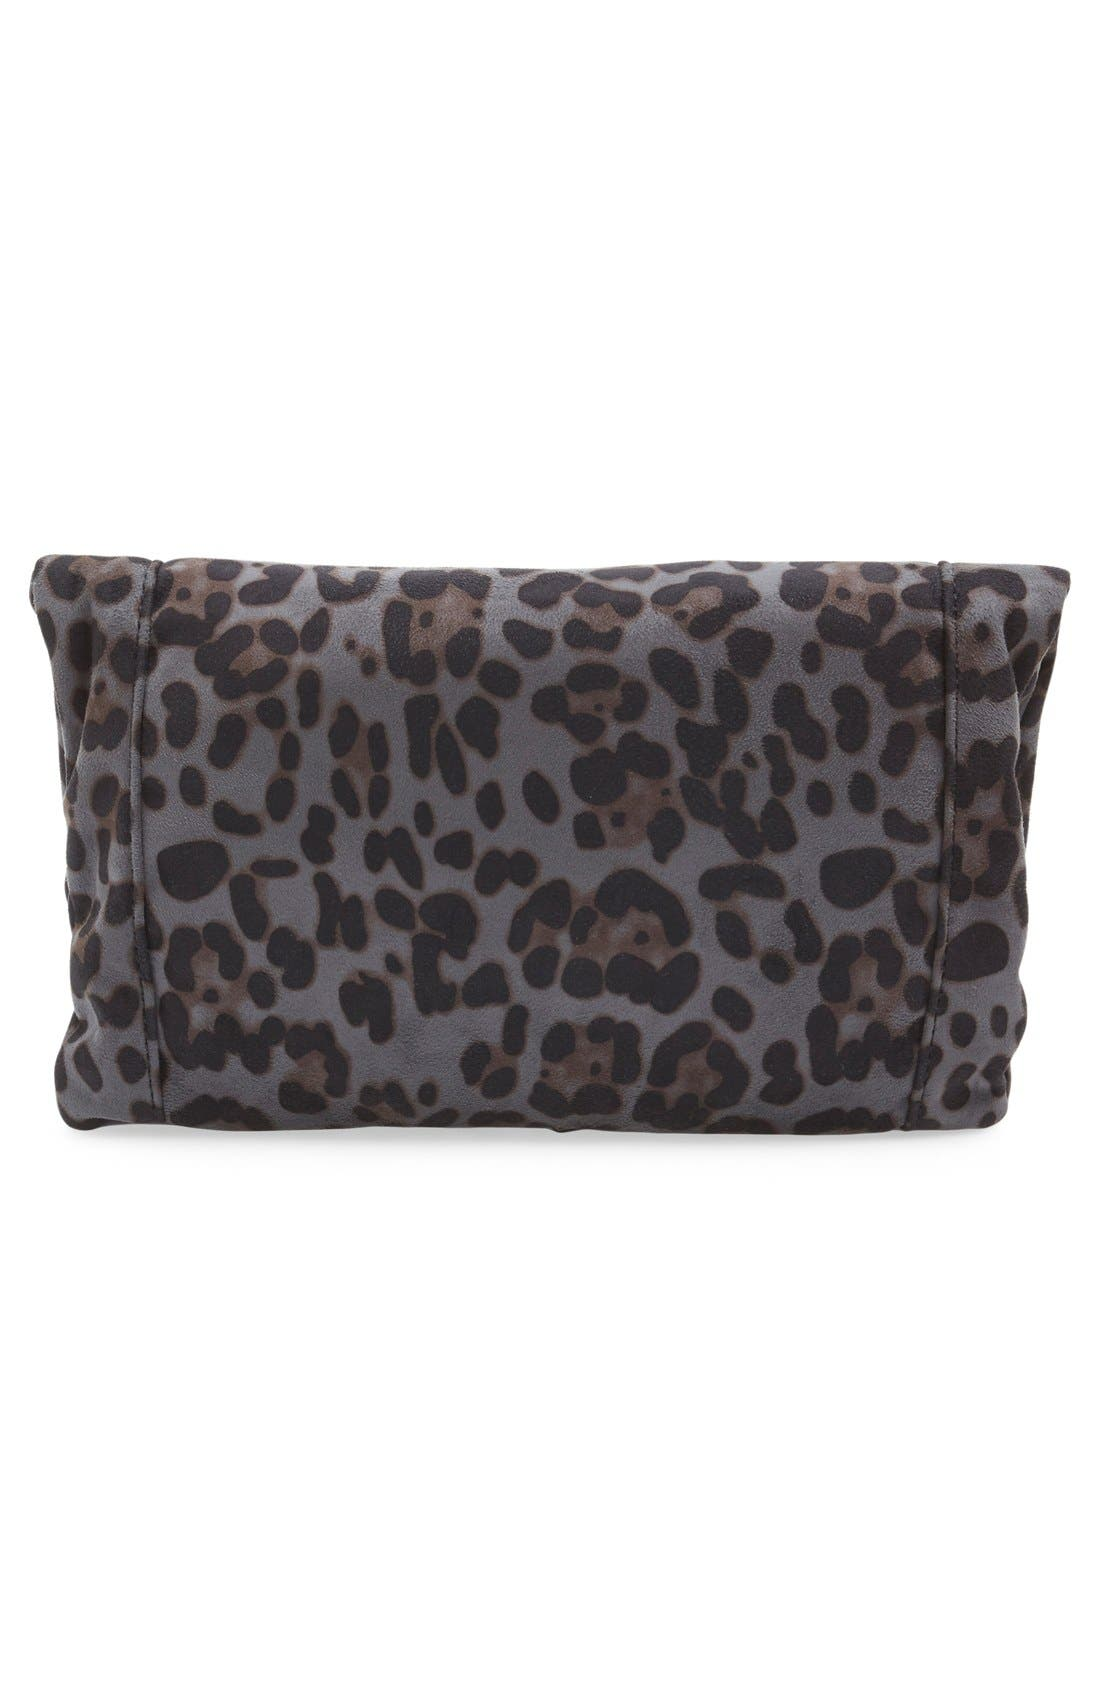 'Tasia' Print Foldover Clutch,                             Alternate thumbnail 6, color,                             020